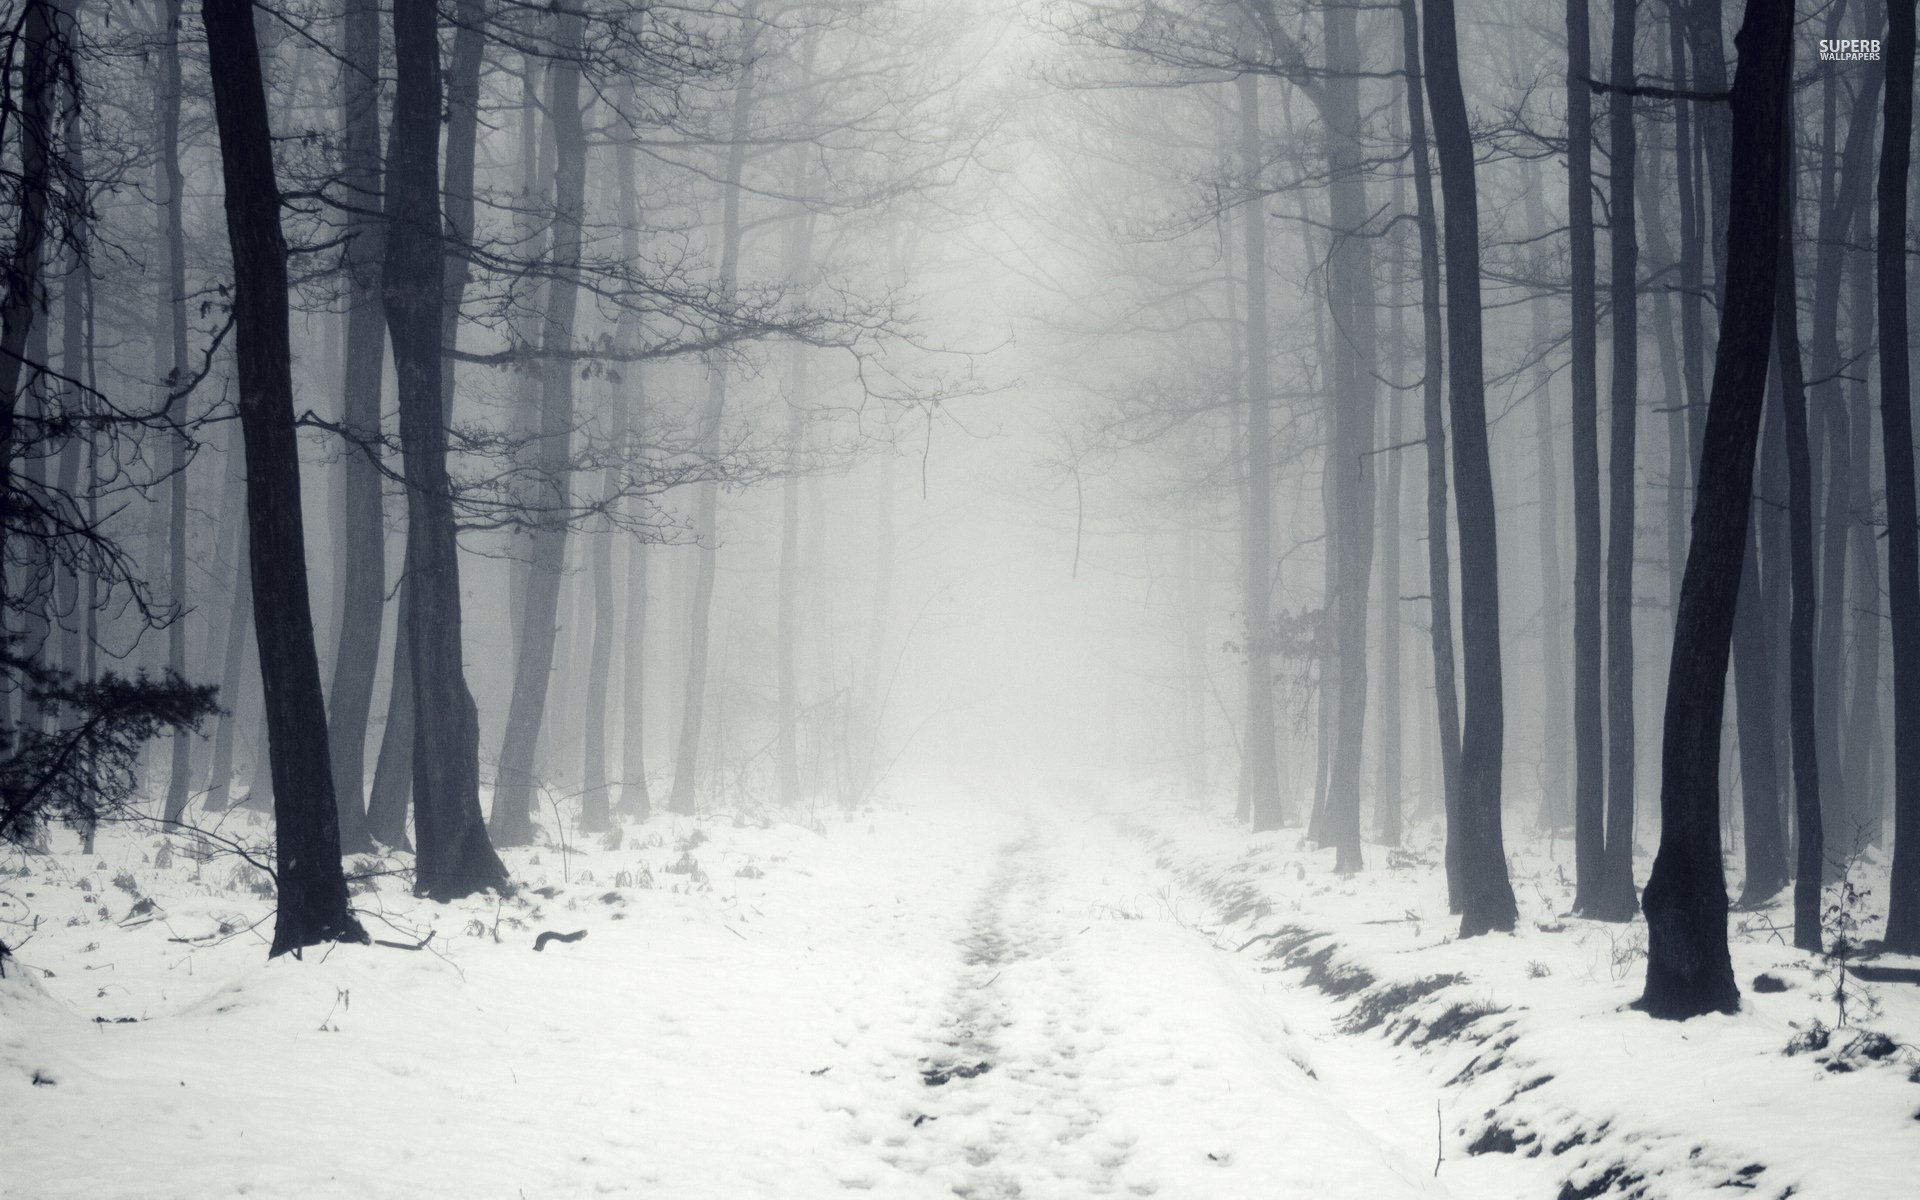 Snowy Path In The Foggy Forest 16783 Hd Wallpaper